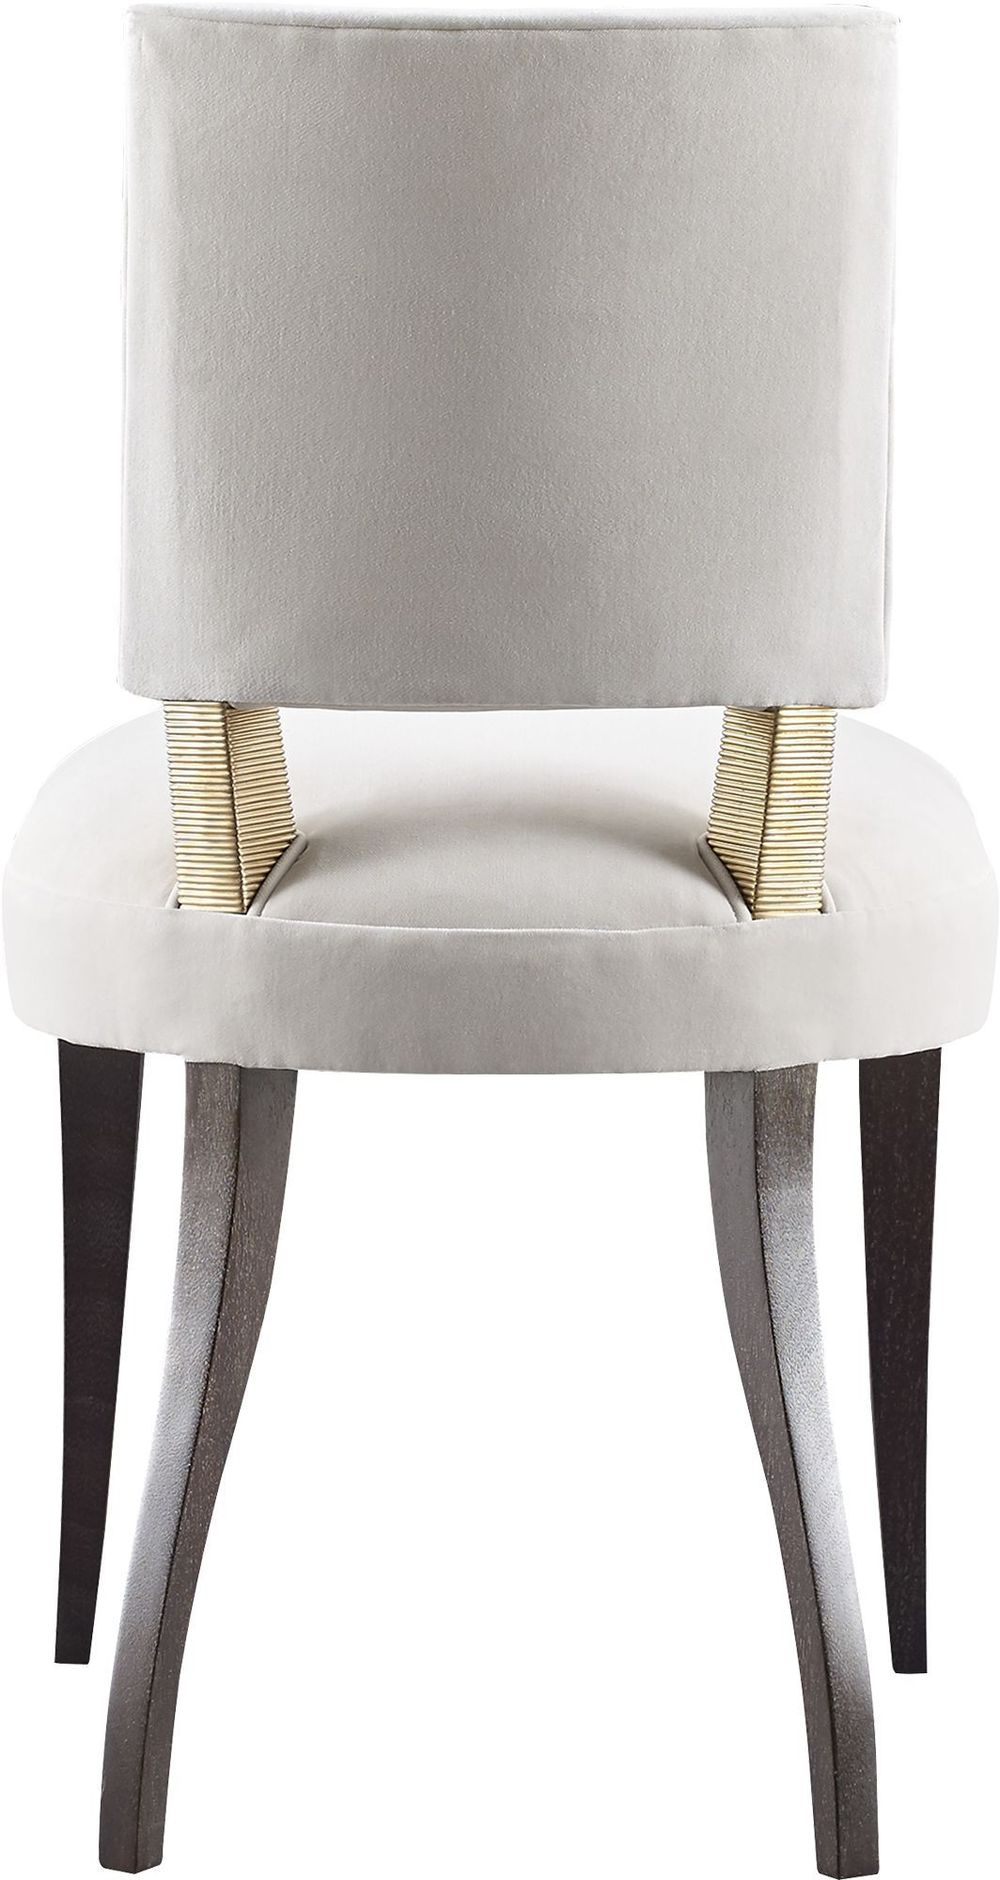 Baker Furniture - Cuff Dining Chair